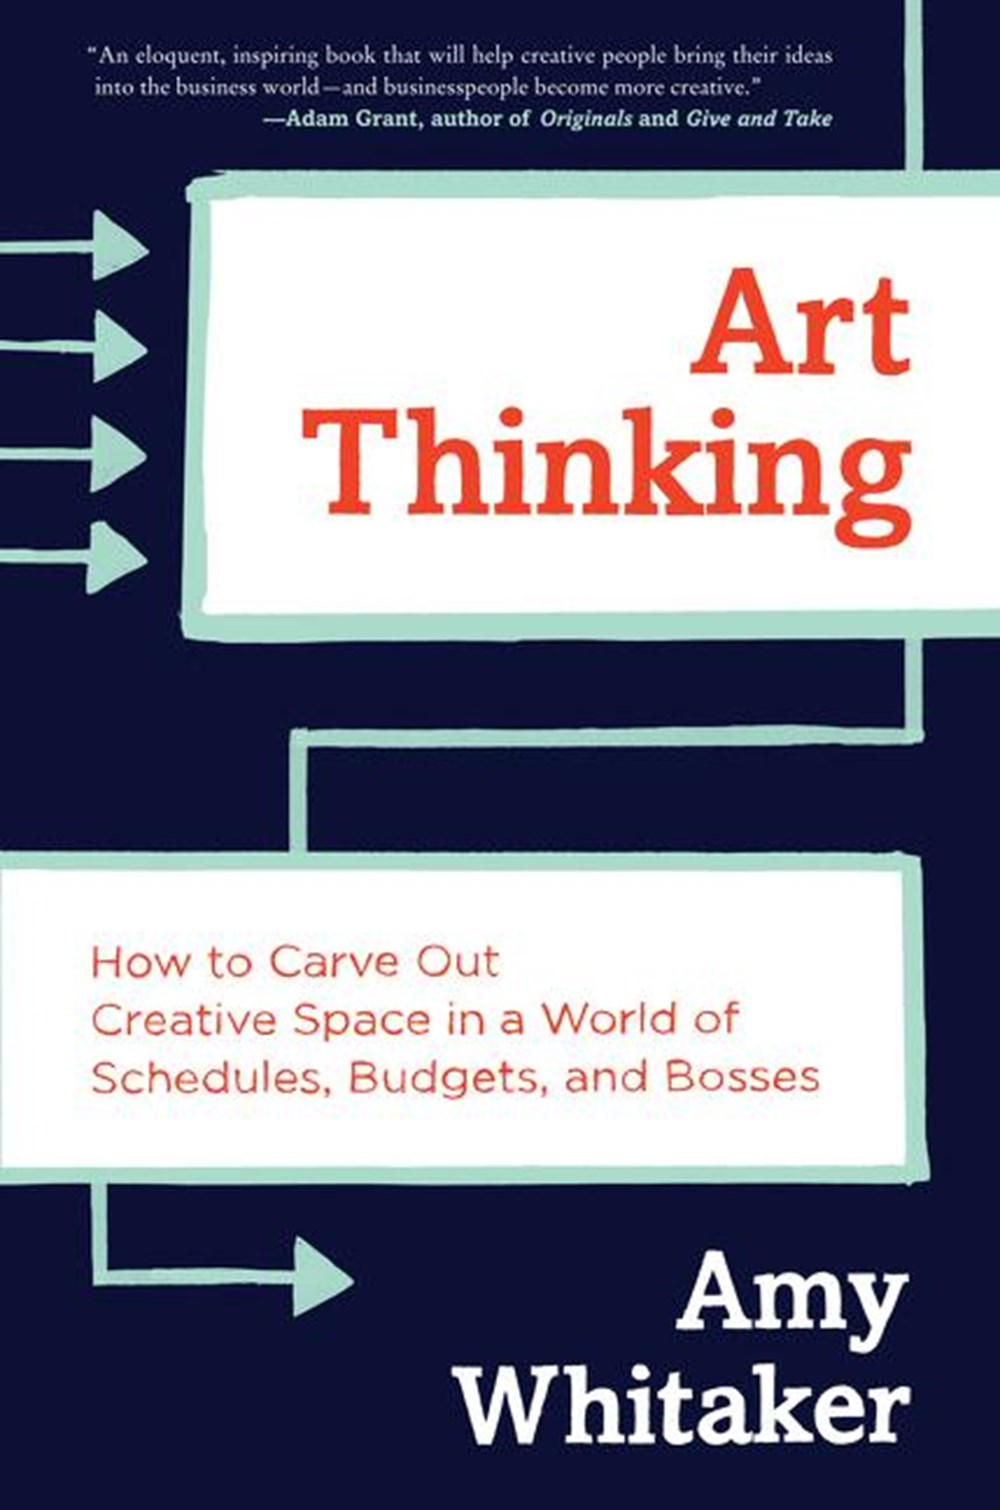 Art Thinking How to Carve Out Creative Space in a World of Schedules, Budgets, and Bosses